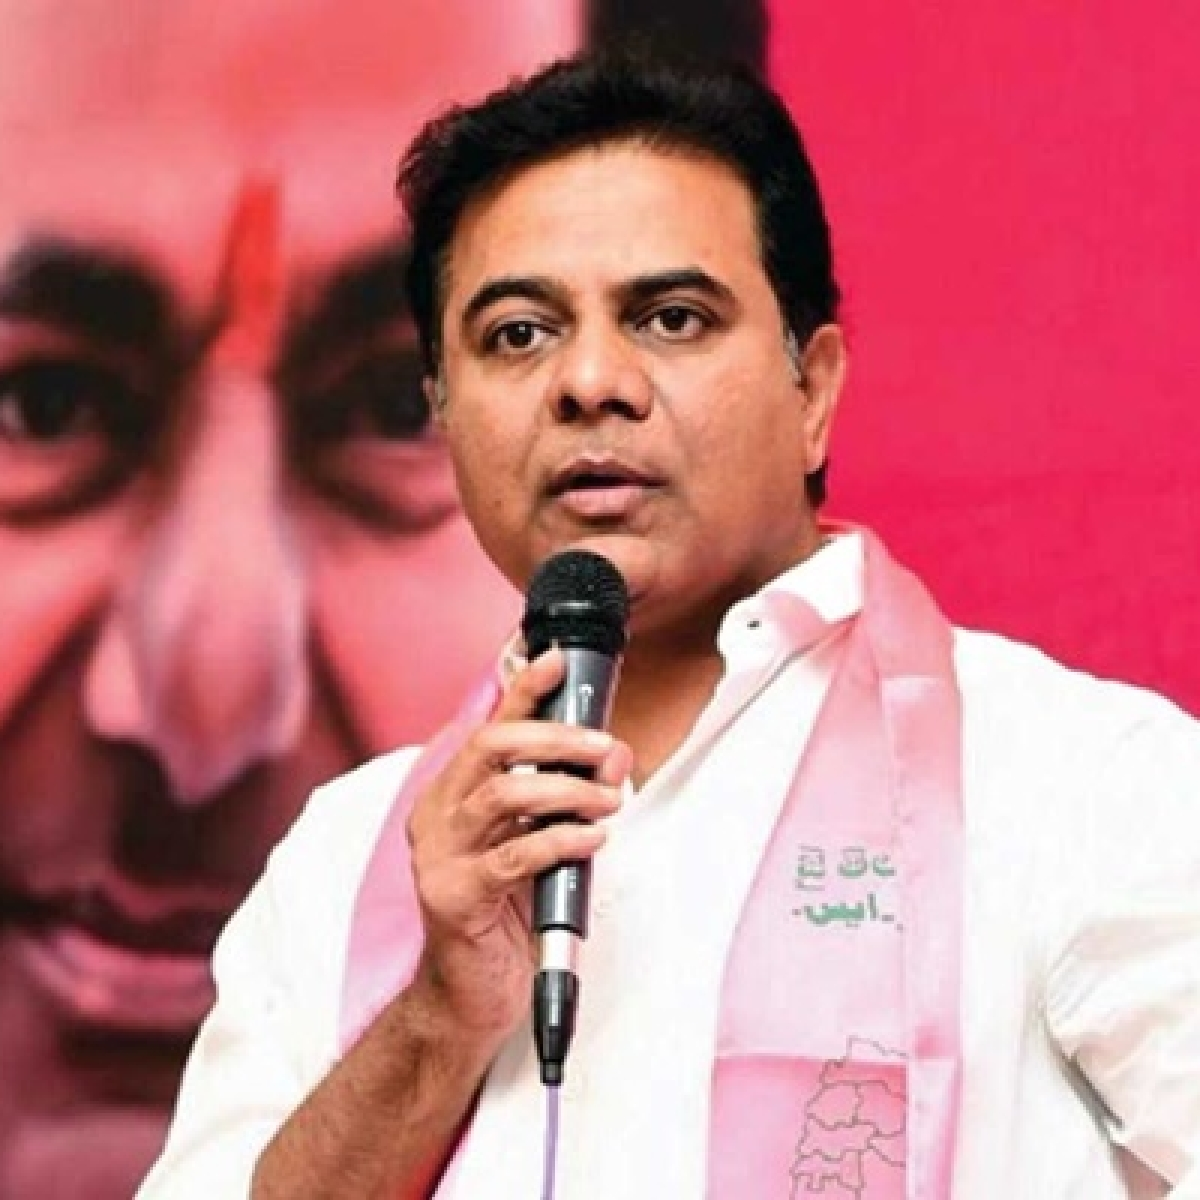 'Don't want claps and flowers, need self-respect and dignified salaries', tweets Telangana doctor; minister KT Rama Rao responds